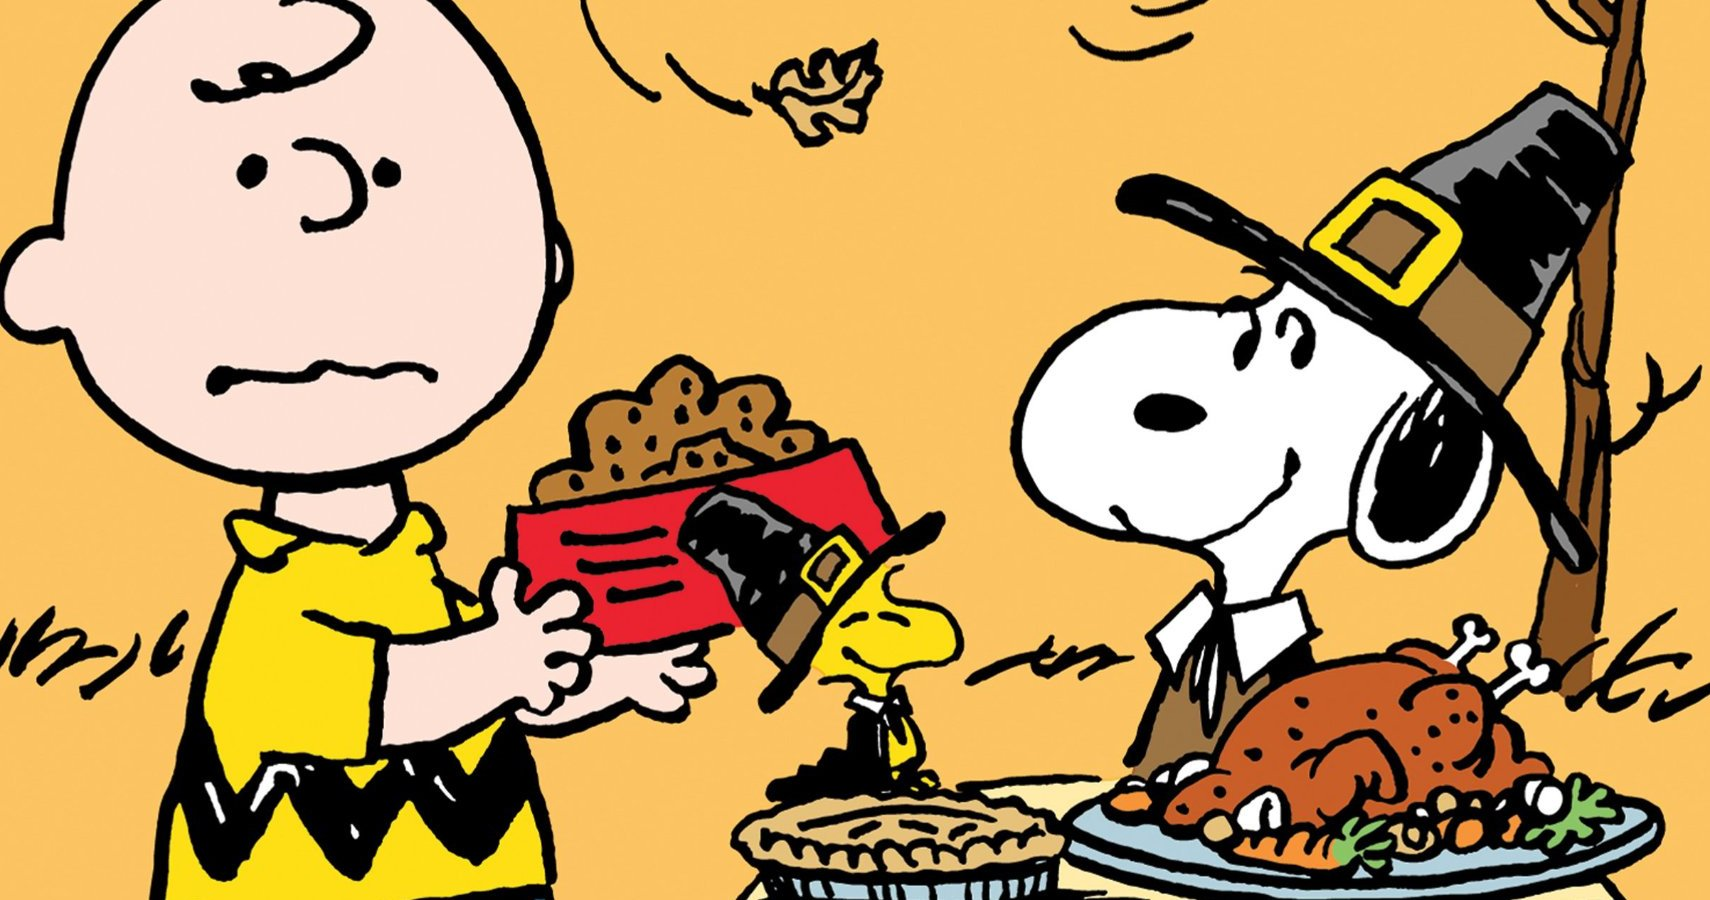 10 Memorable Moments From A Charlie Brown Thanksgiving Special.